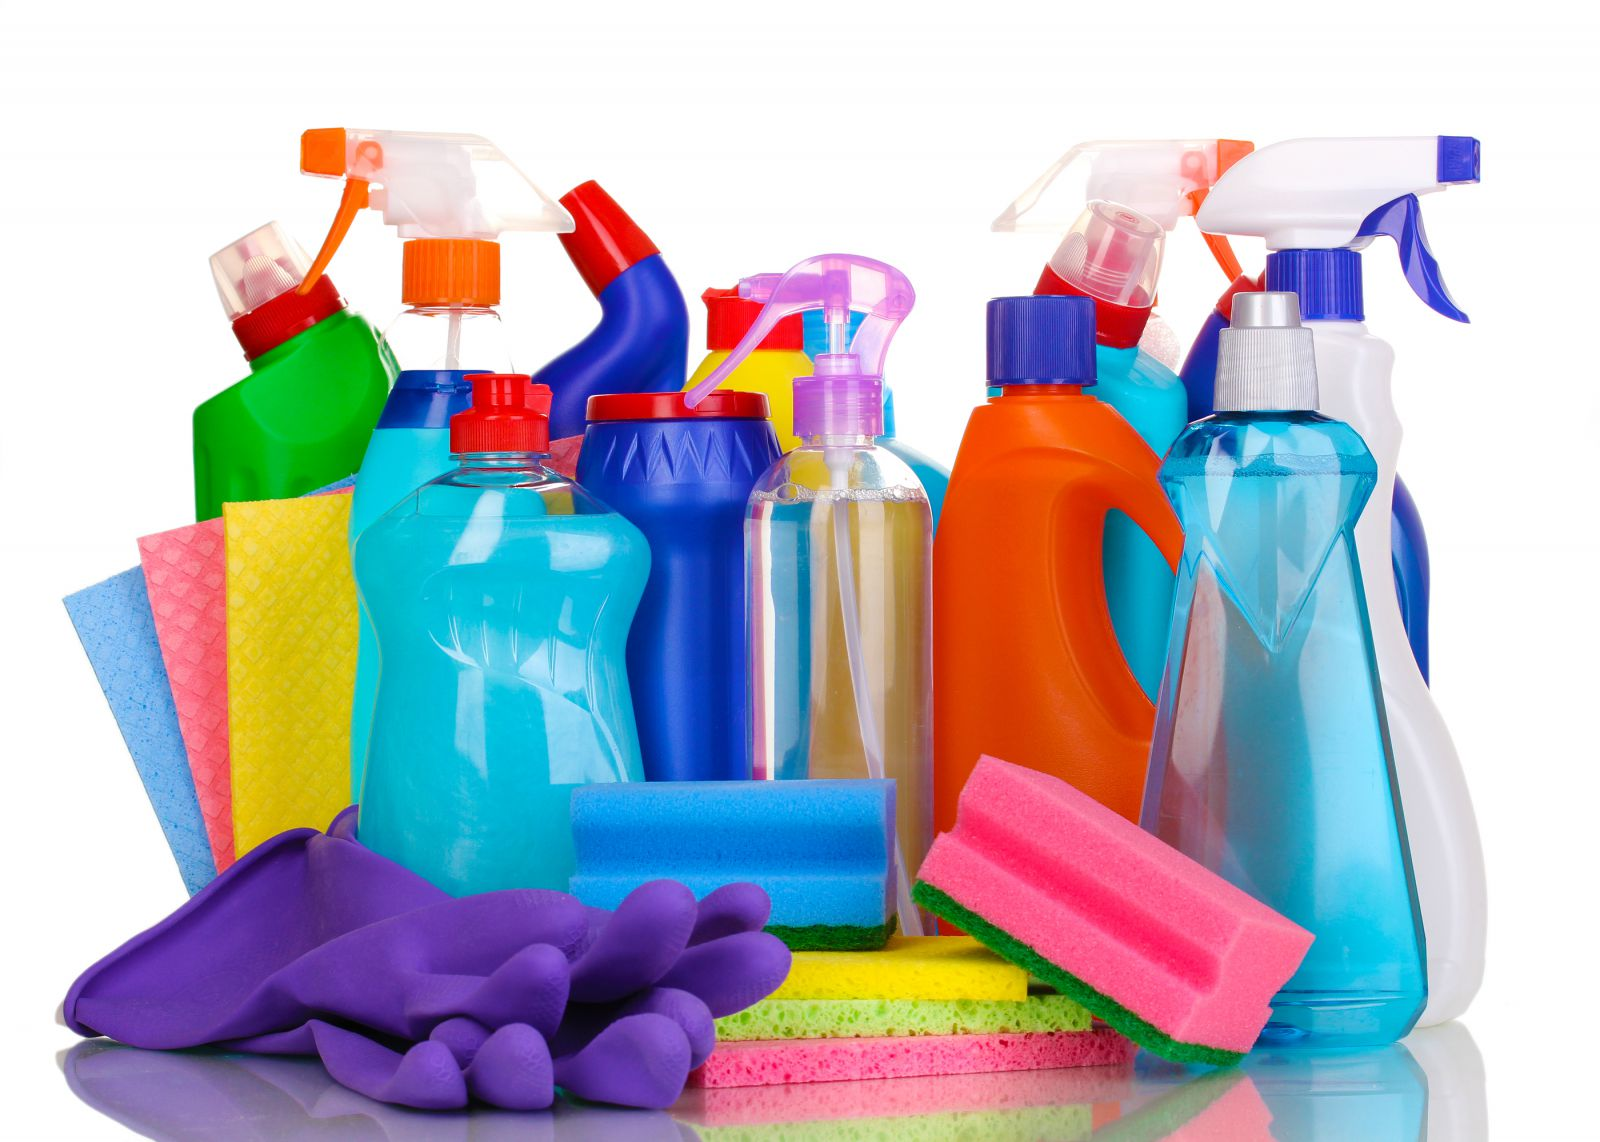 Vibrant cleaning supplies